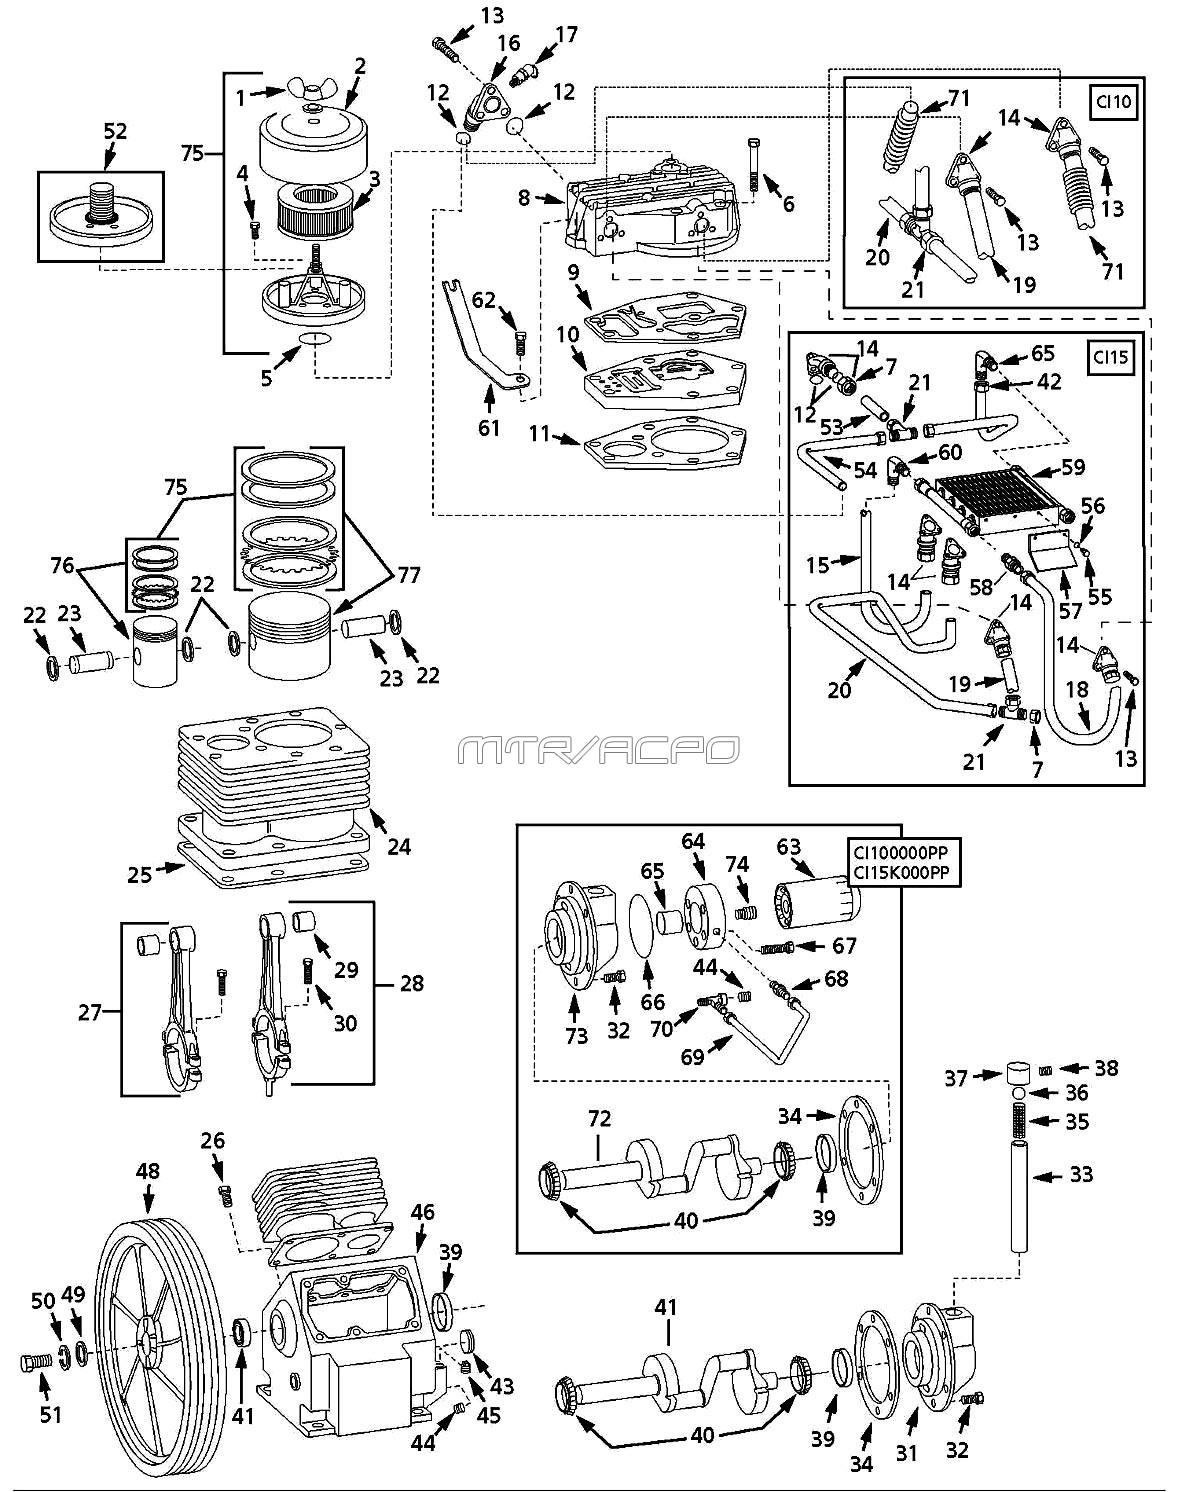 Speedaire Air Compressor Wiring Diagram Libraries Viair Free Download Diagrams Pictures 5z405a Parts